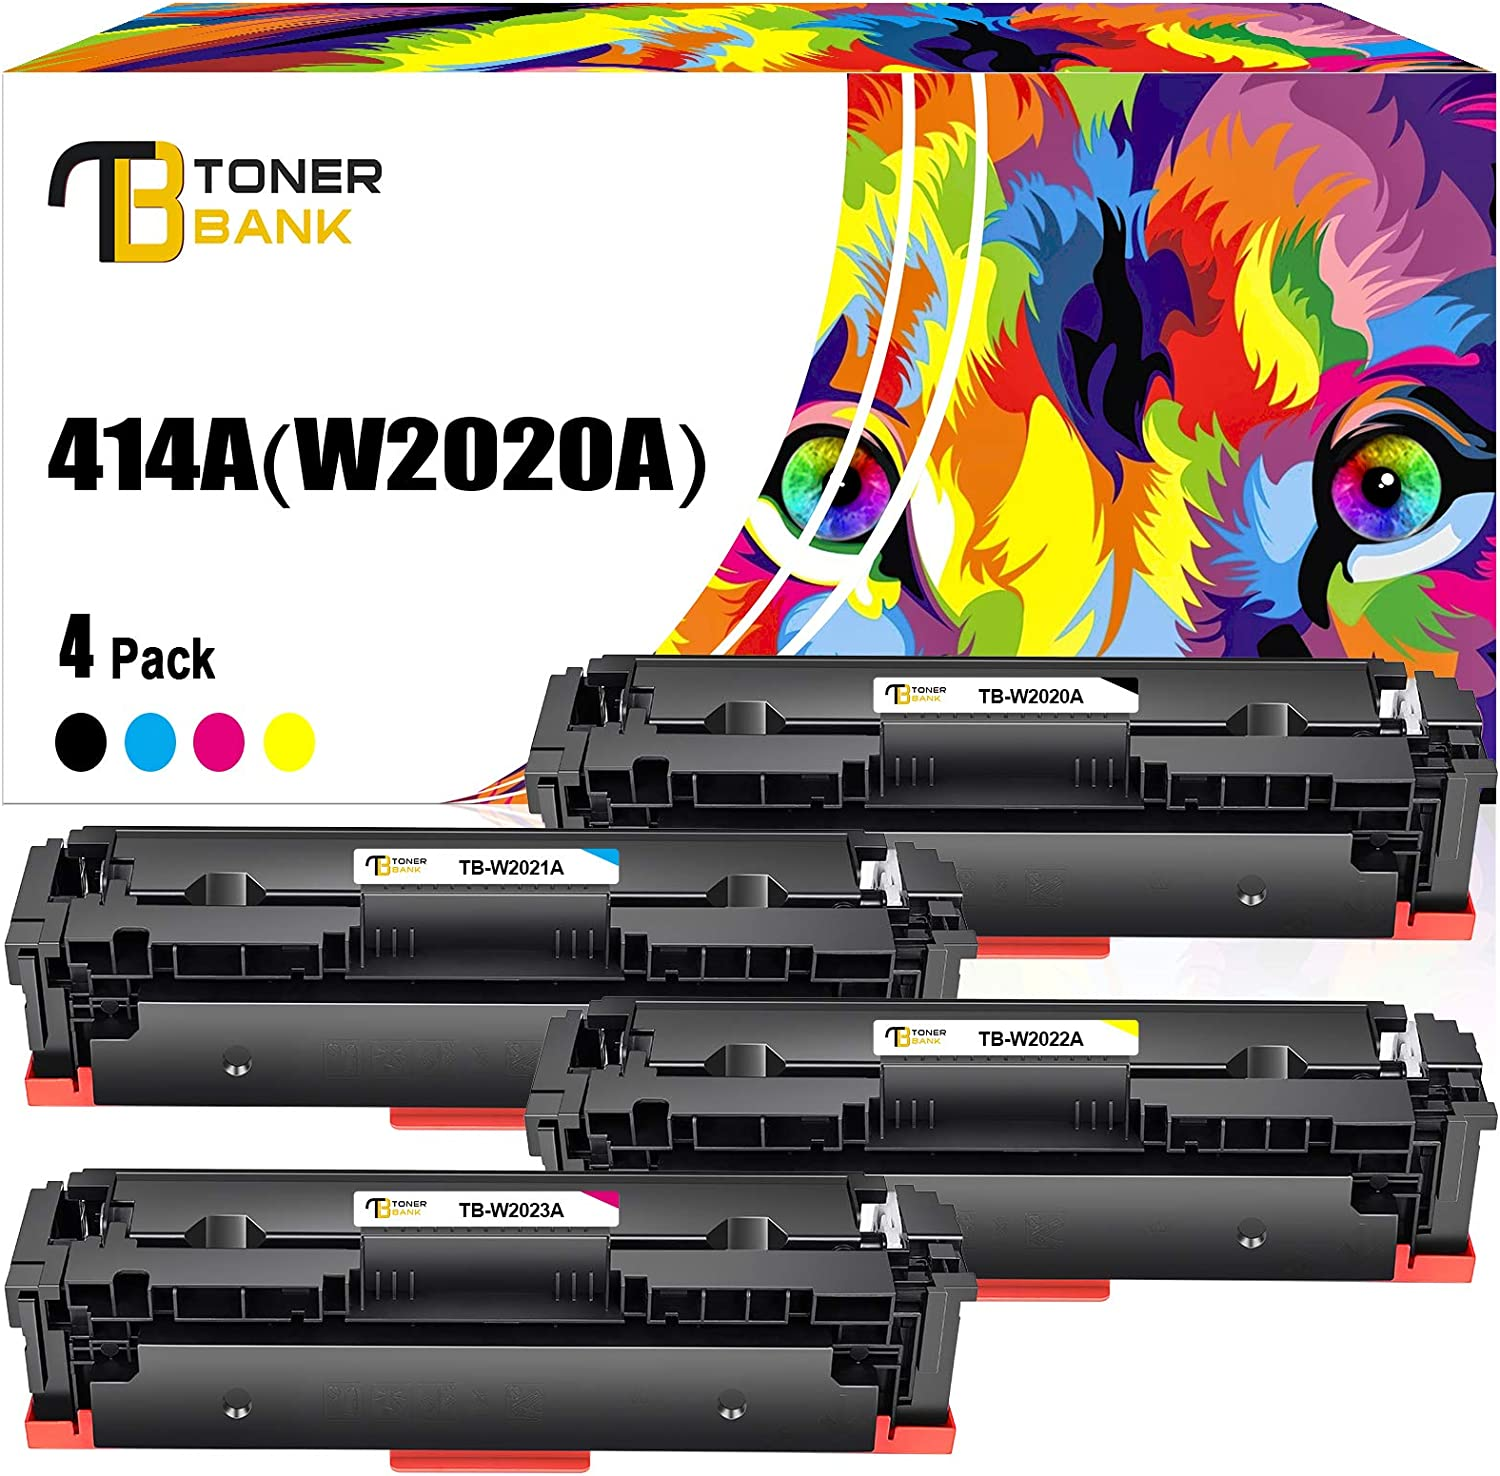 Toner Bank Compatible Toner Cartridge Replacement for HP 414A 414X for HP Color Laserjet Pro MFP M479fdw M479fdn M454dw M454dn M454 M479 W2020A W2021A W2022A W2023A (Black Cyan Magenta Yellow, 4-Pack)